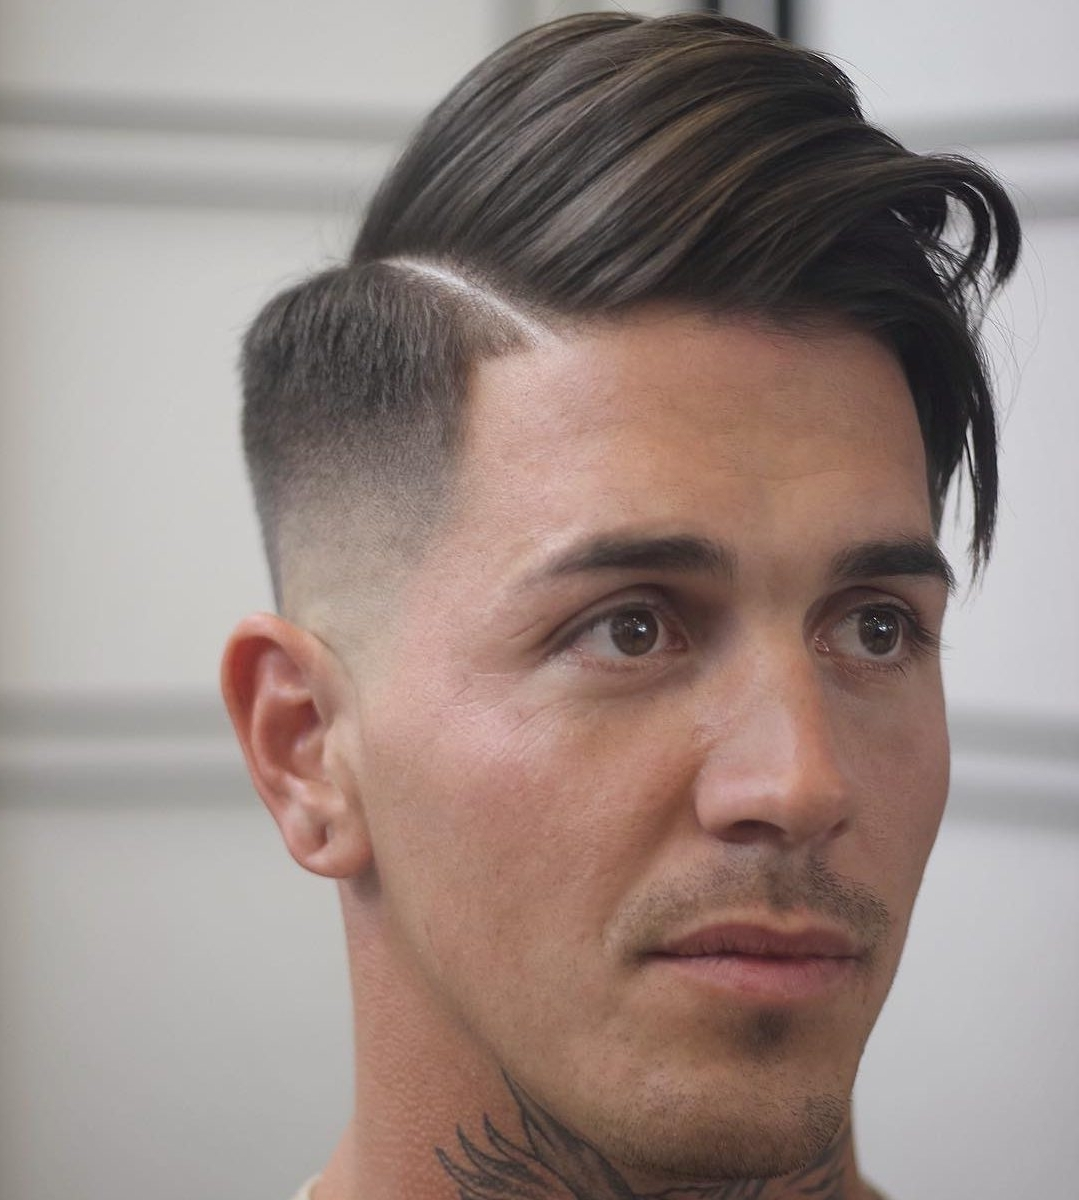 19 Medium Hairstyles For Men (Cool 2020 Styles) Latest Medium Hairstyles For Men